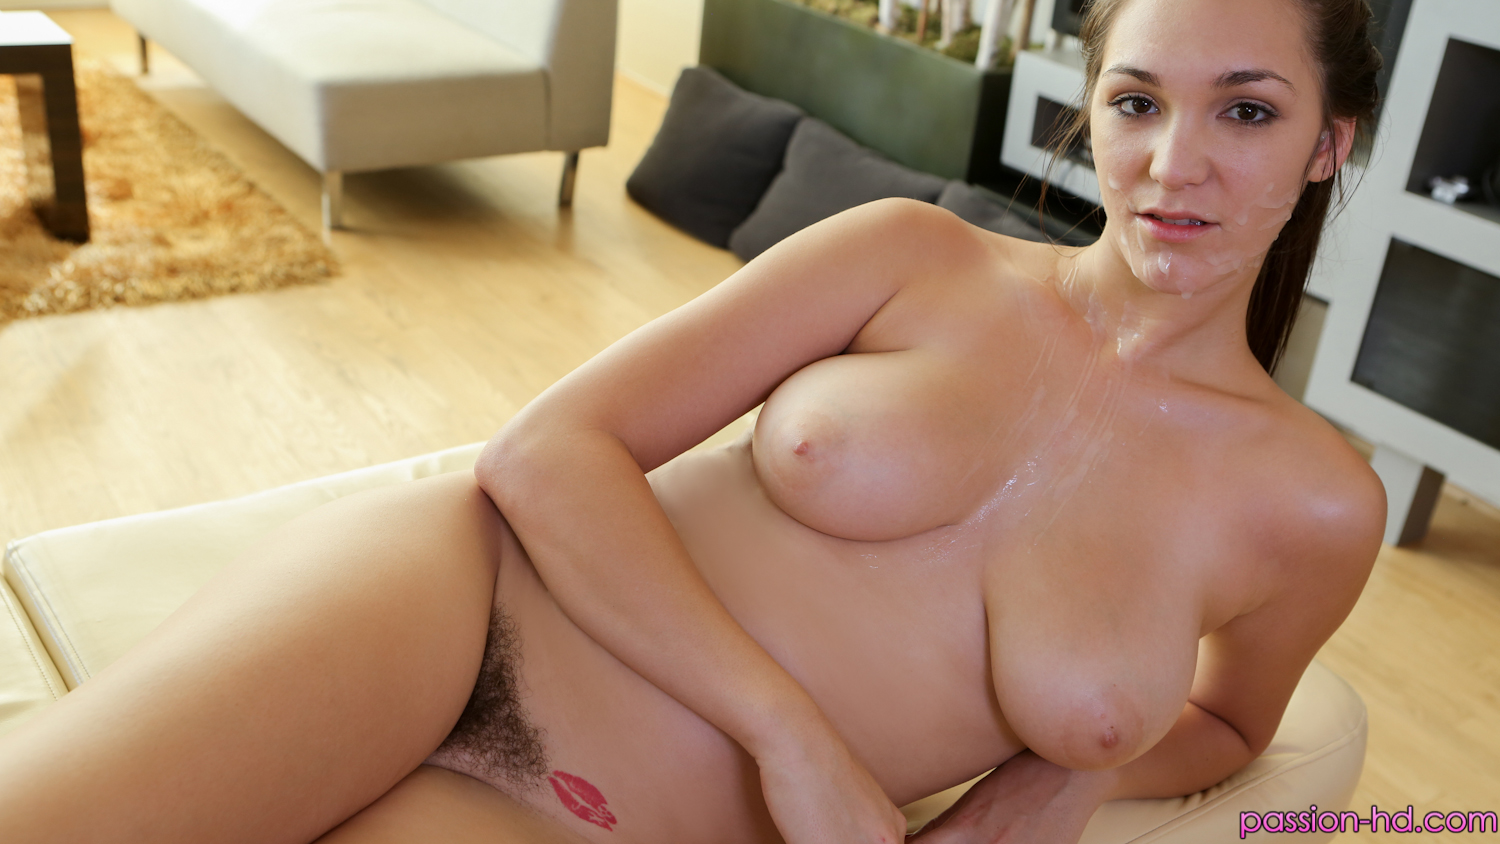 very tall woman naked